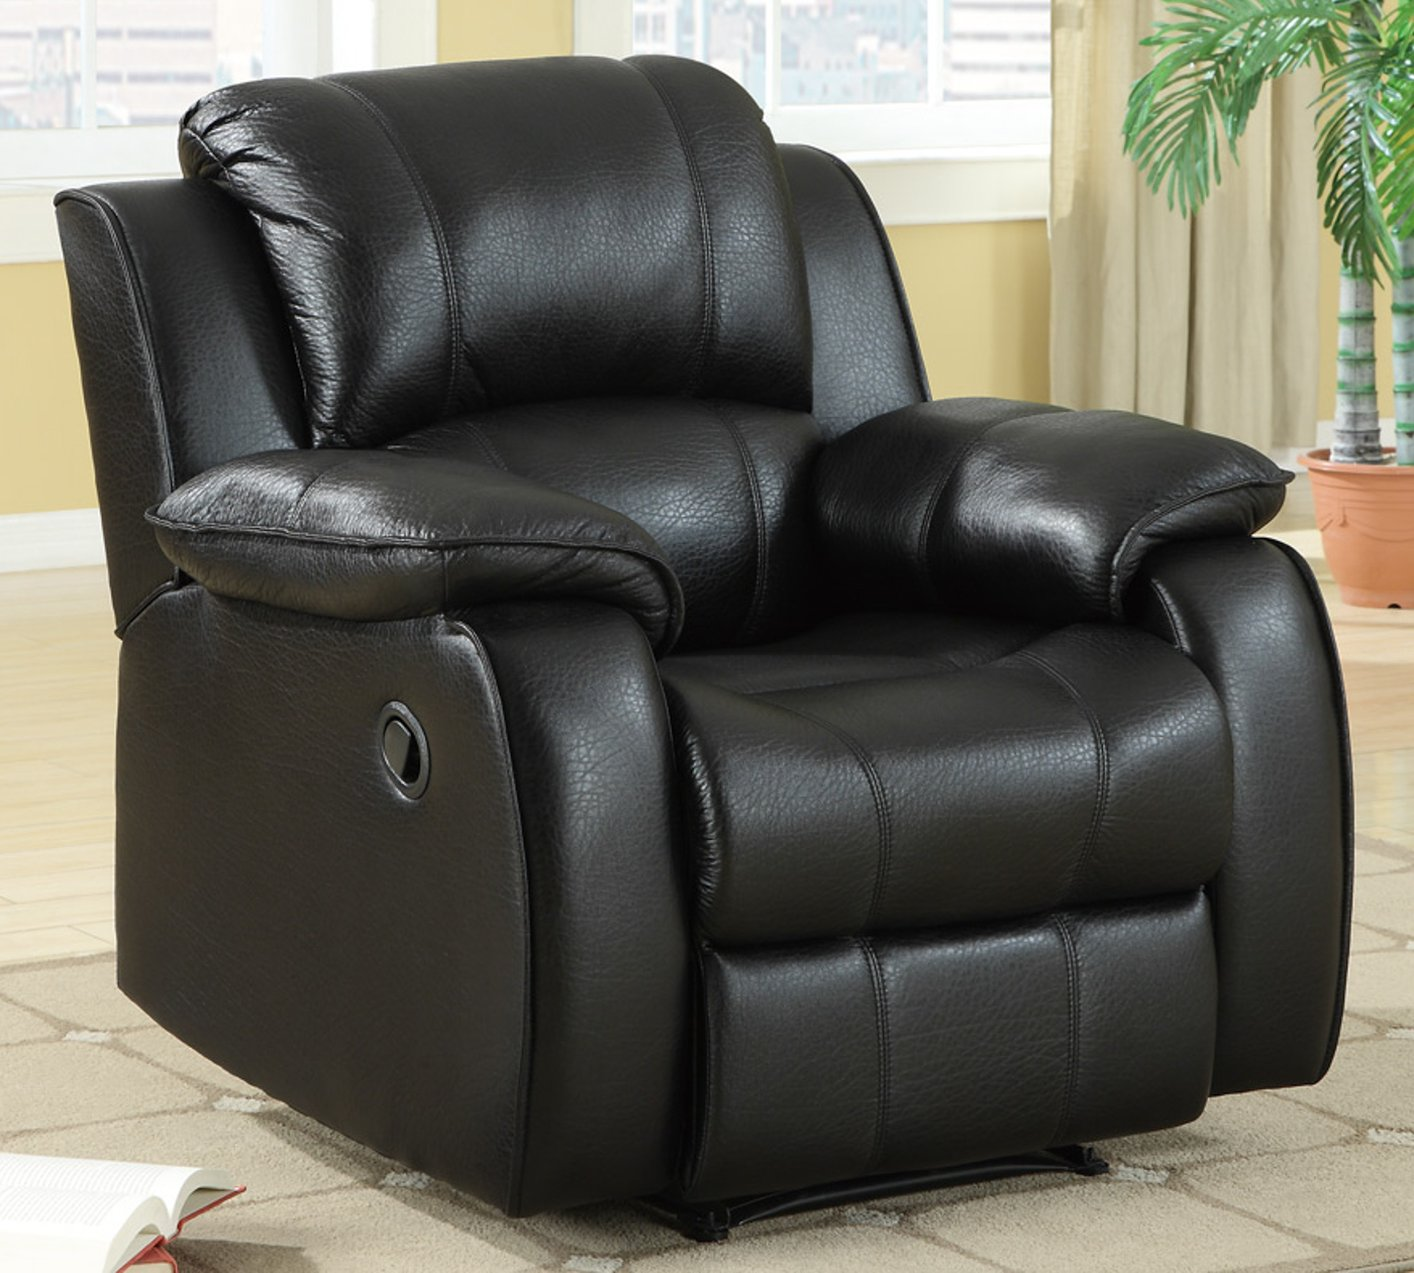 Black Leather Kitchen Chairs: Steal-A-Sofa Furniture Outlet Los